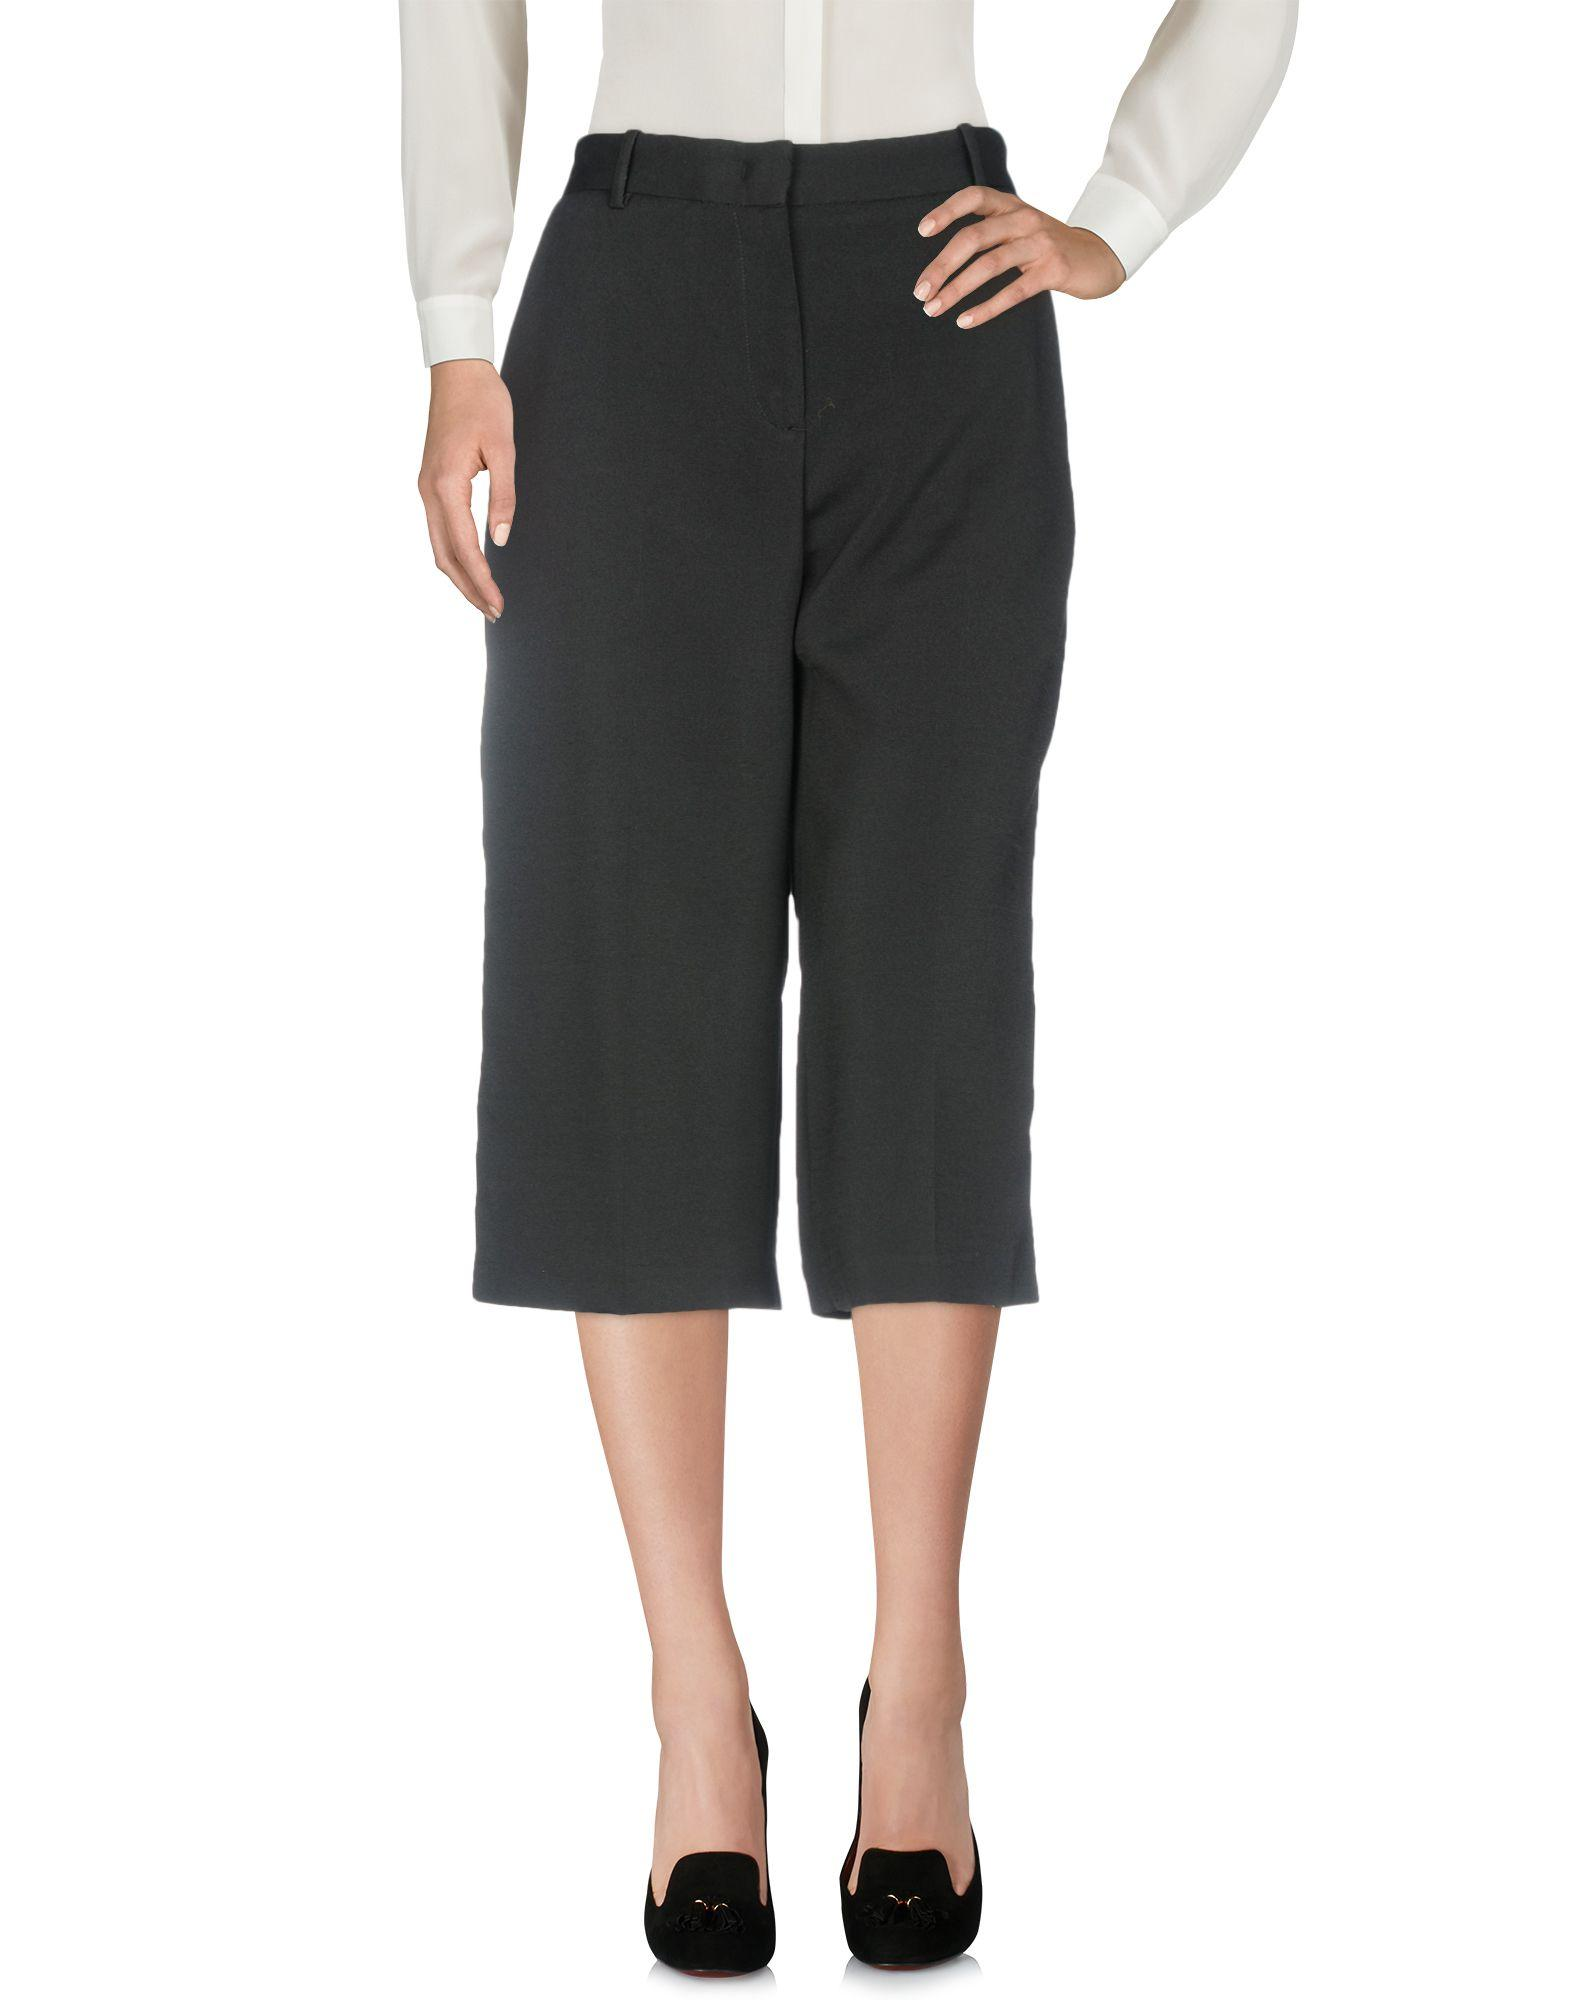 Teresa Dainelli Cropped Pants & Culottes In Black